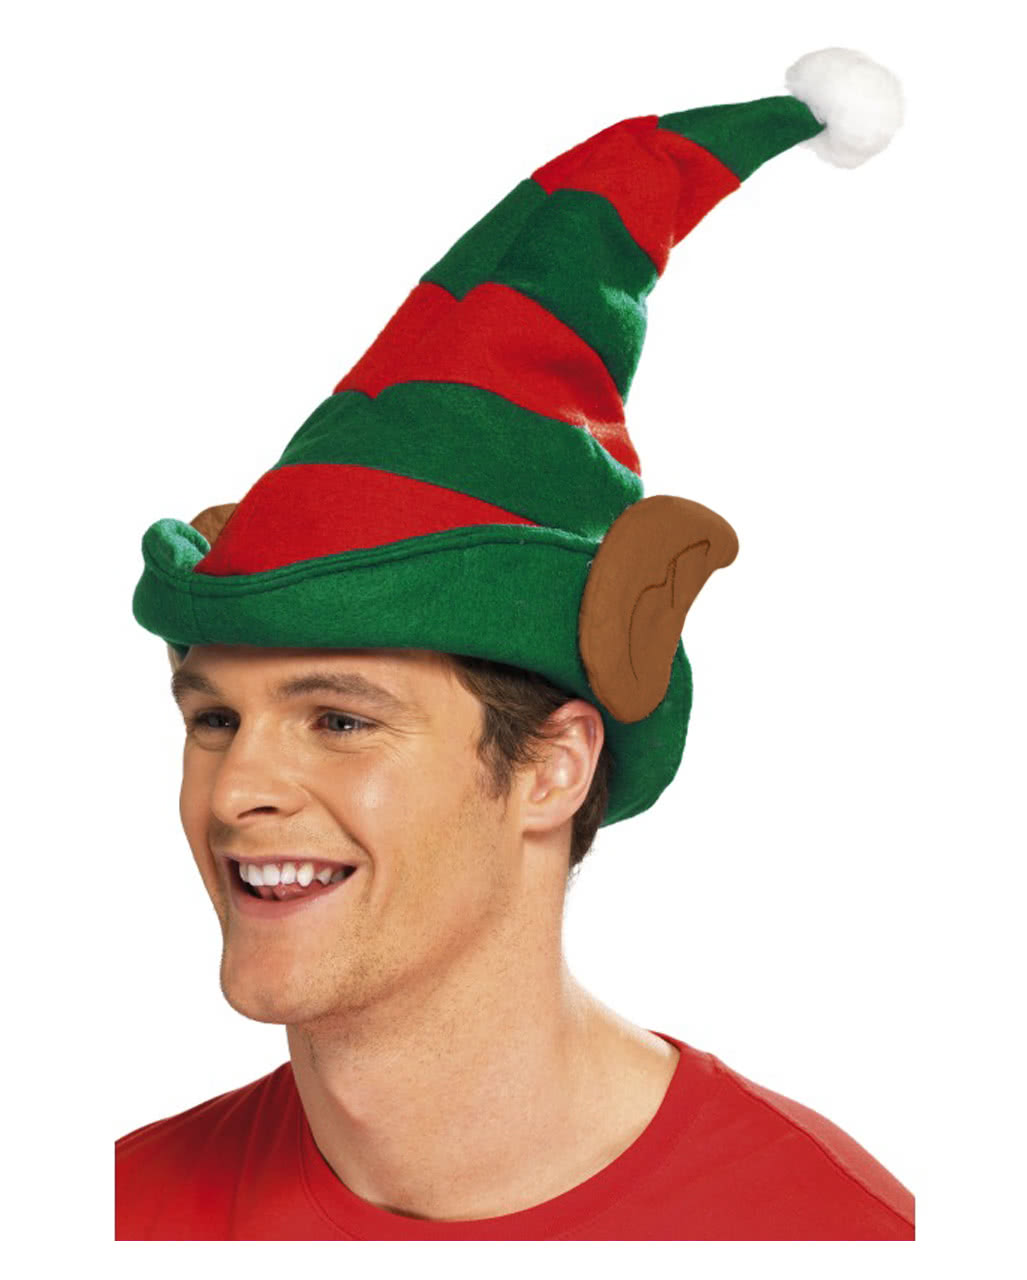 b31faba1f6db1 Elf hat with ear for the Christmas Party